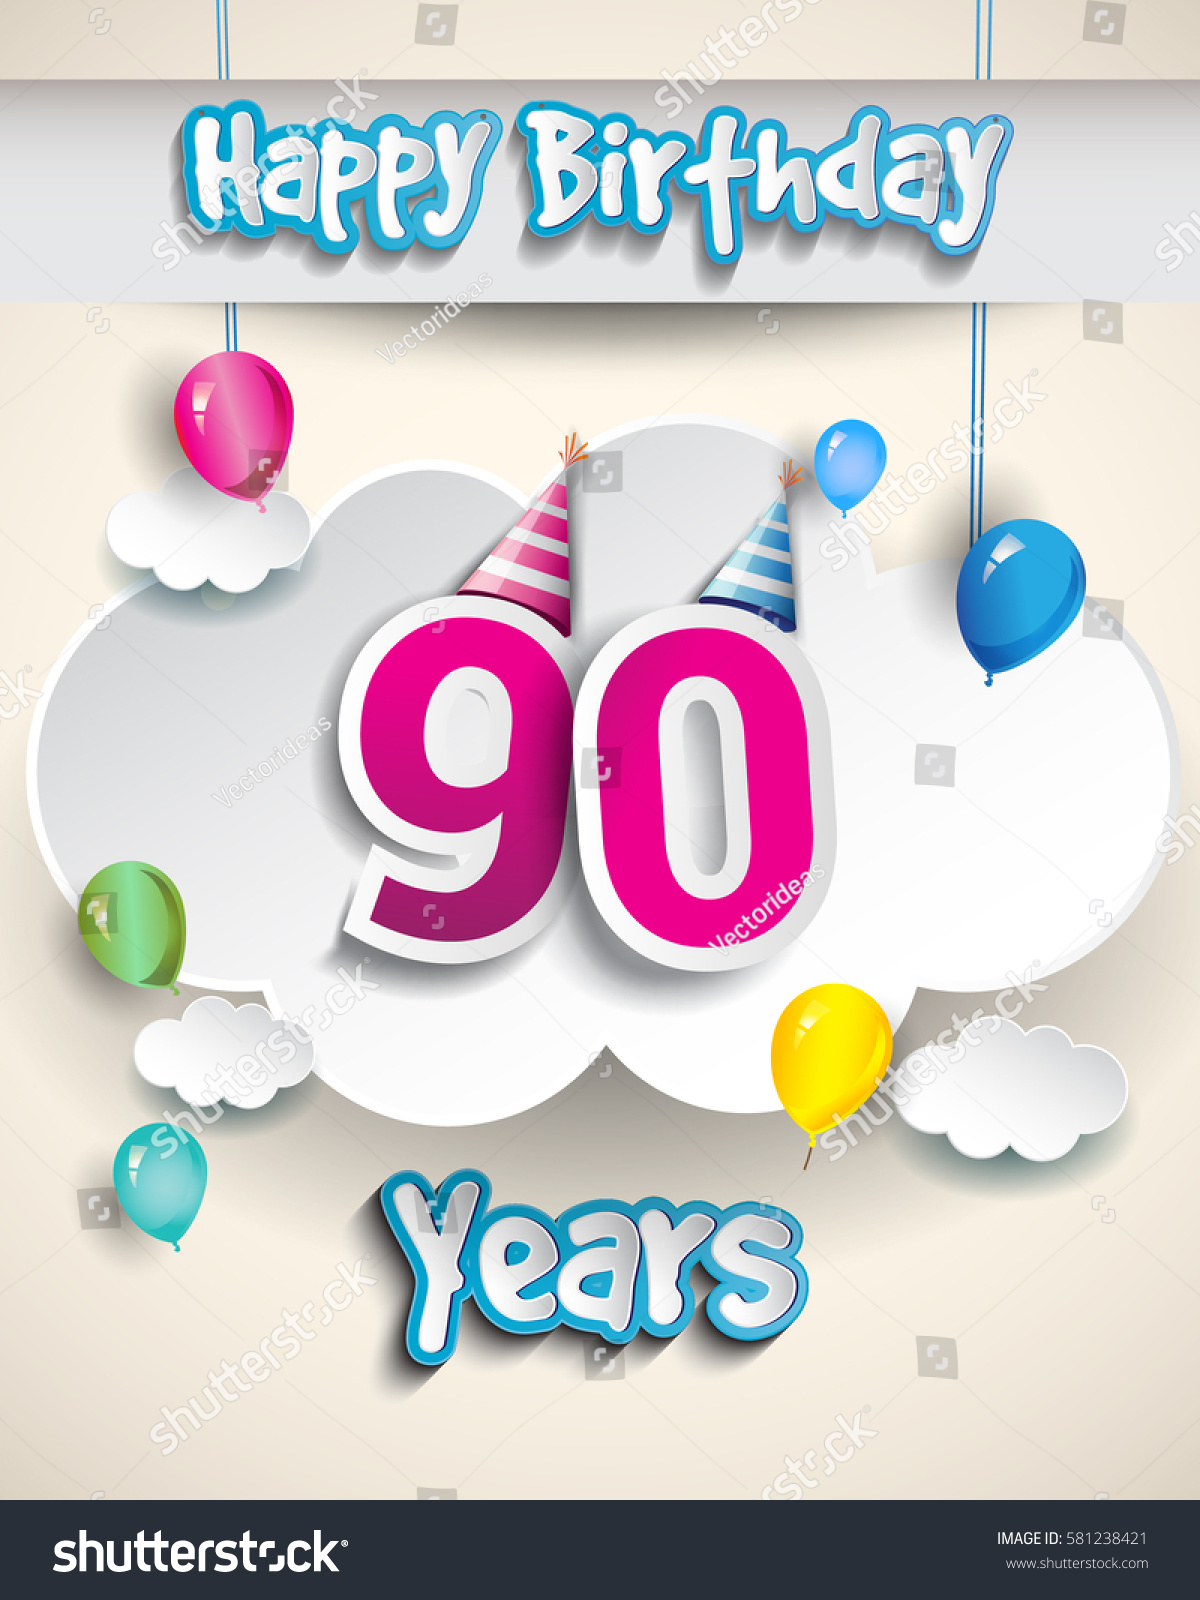 90th Birthday Celebration Design Clouds Balloons Stock Vector ...